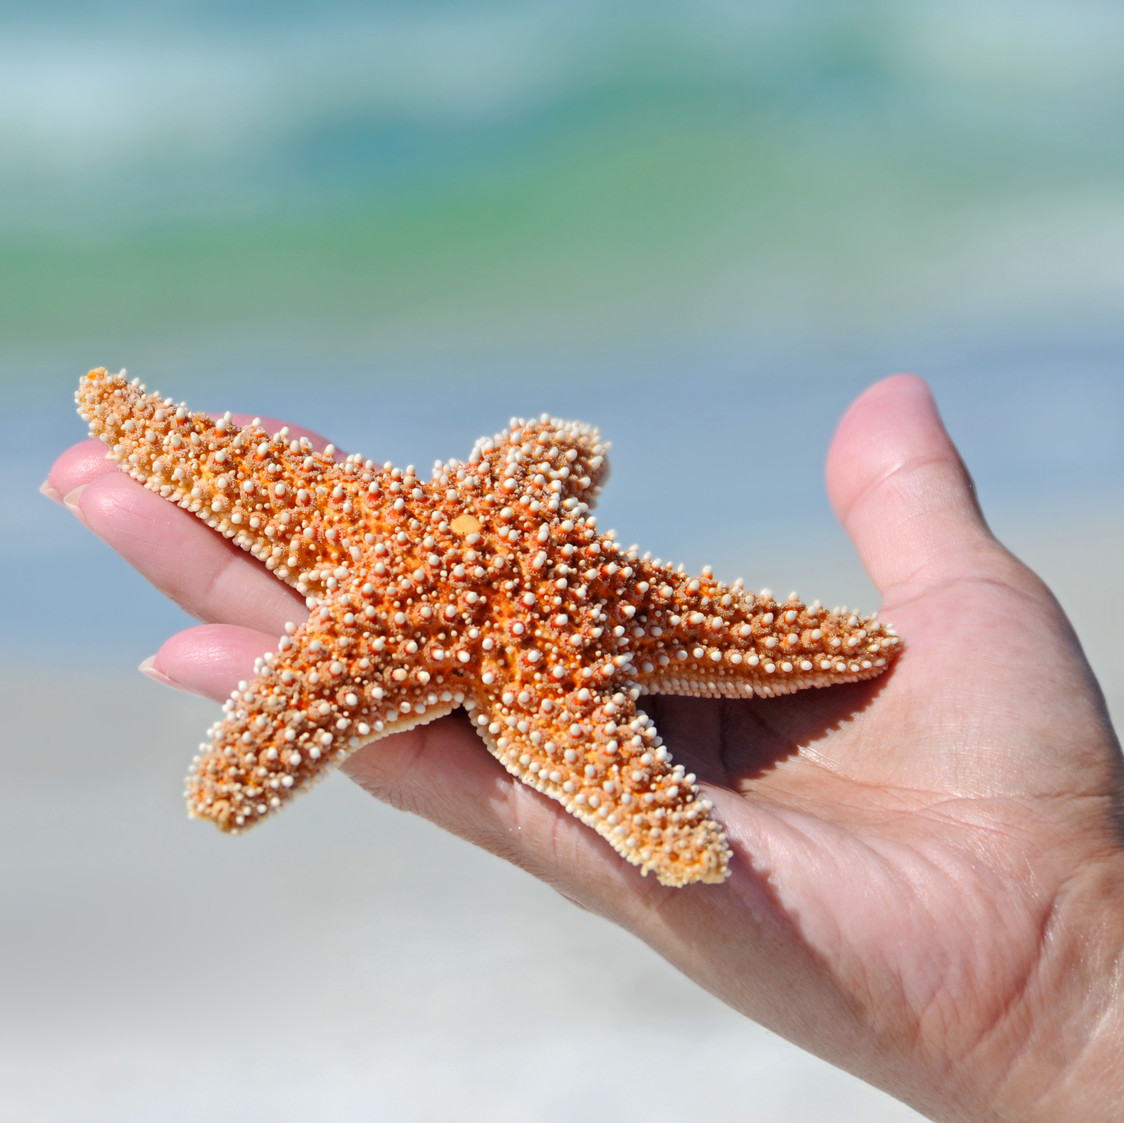 Woman's Hand Holding a Starfish against Ocean in the Background